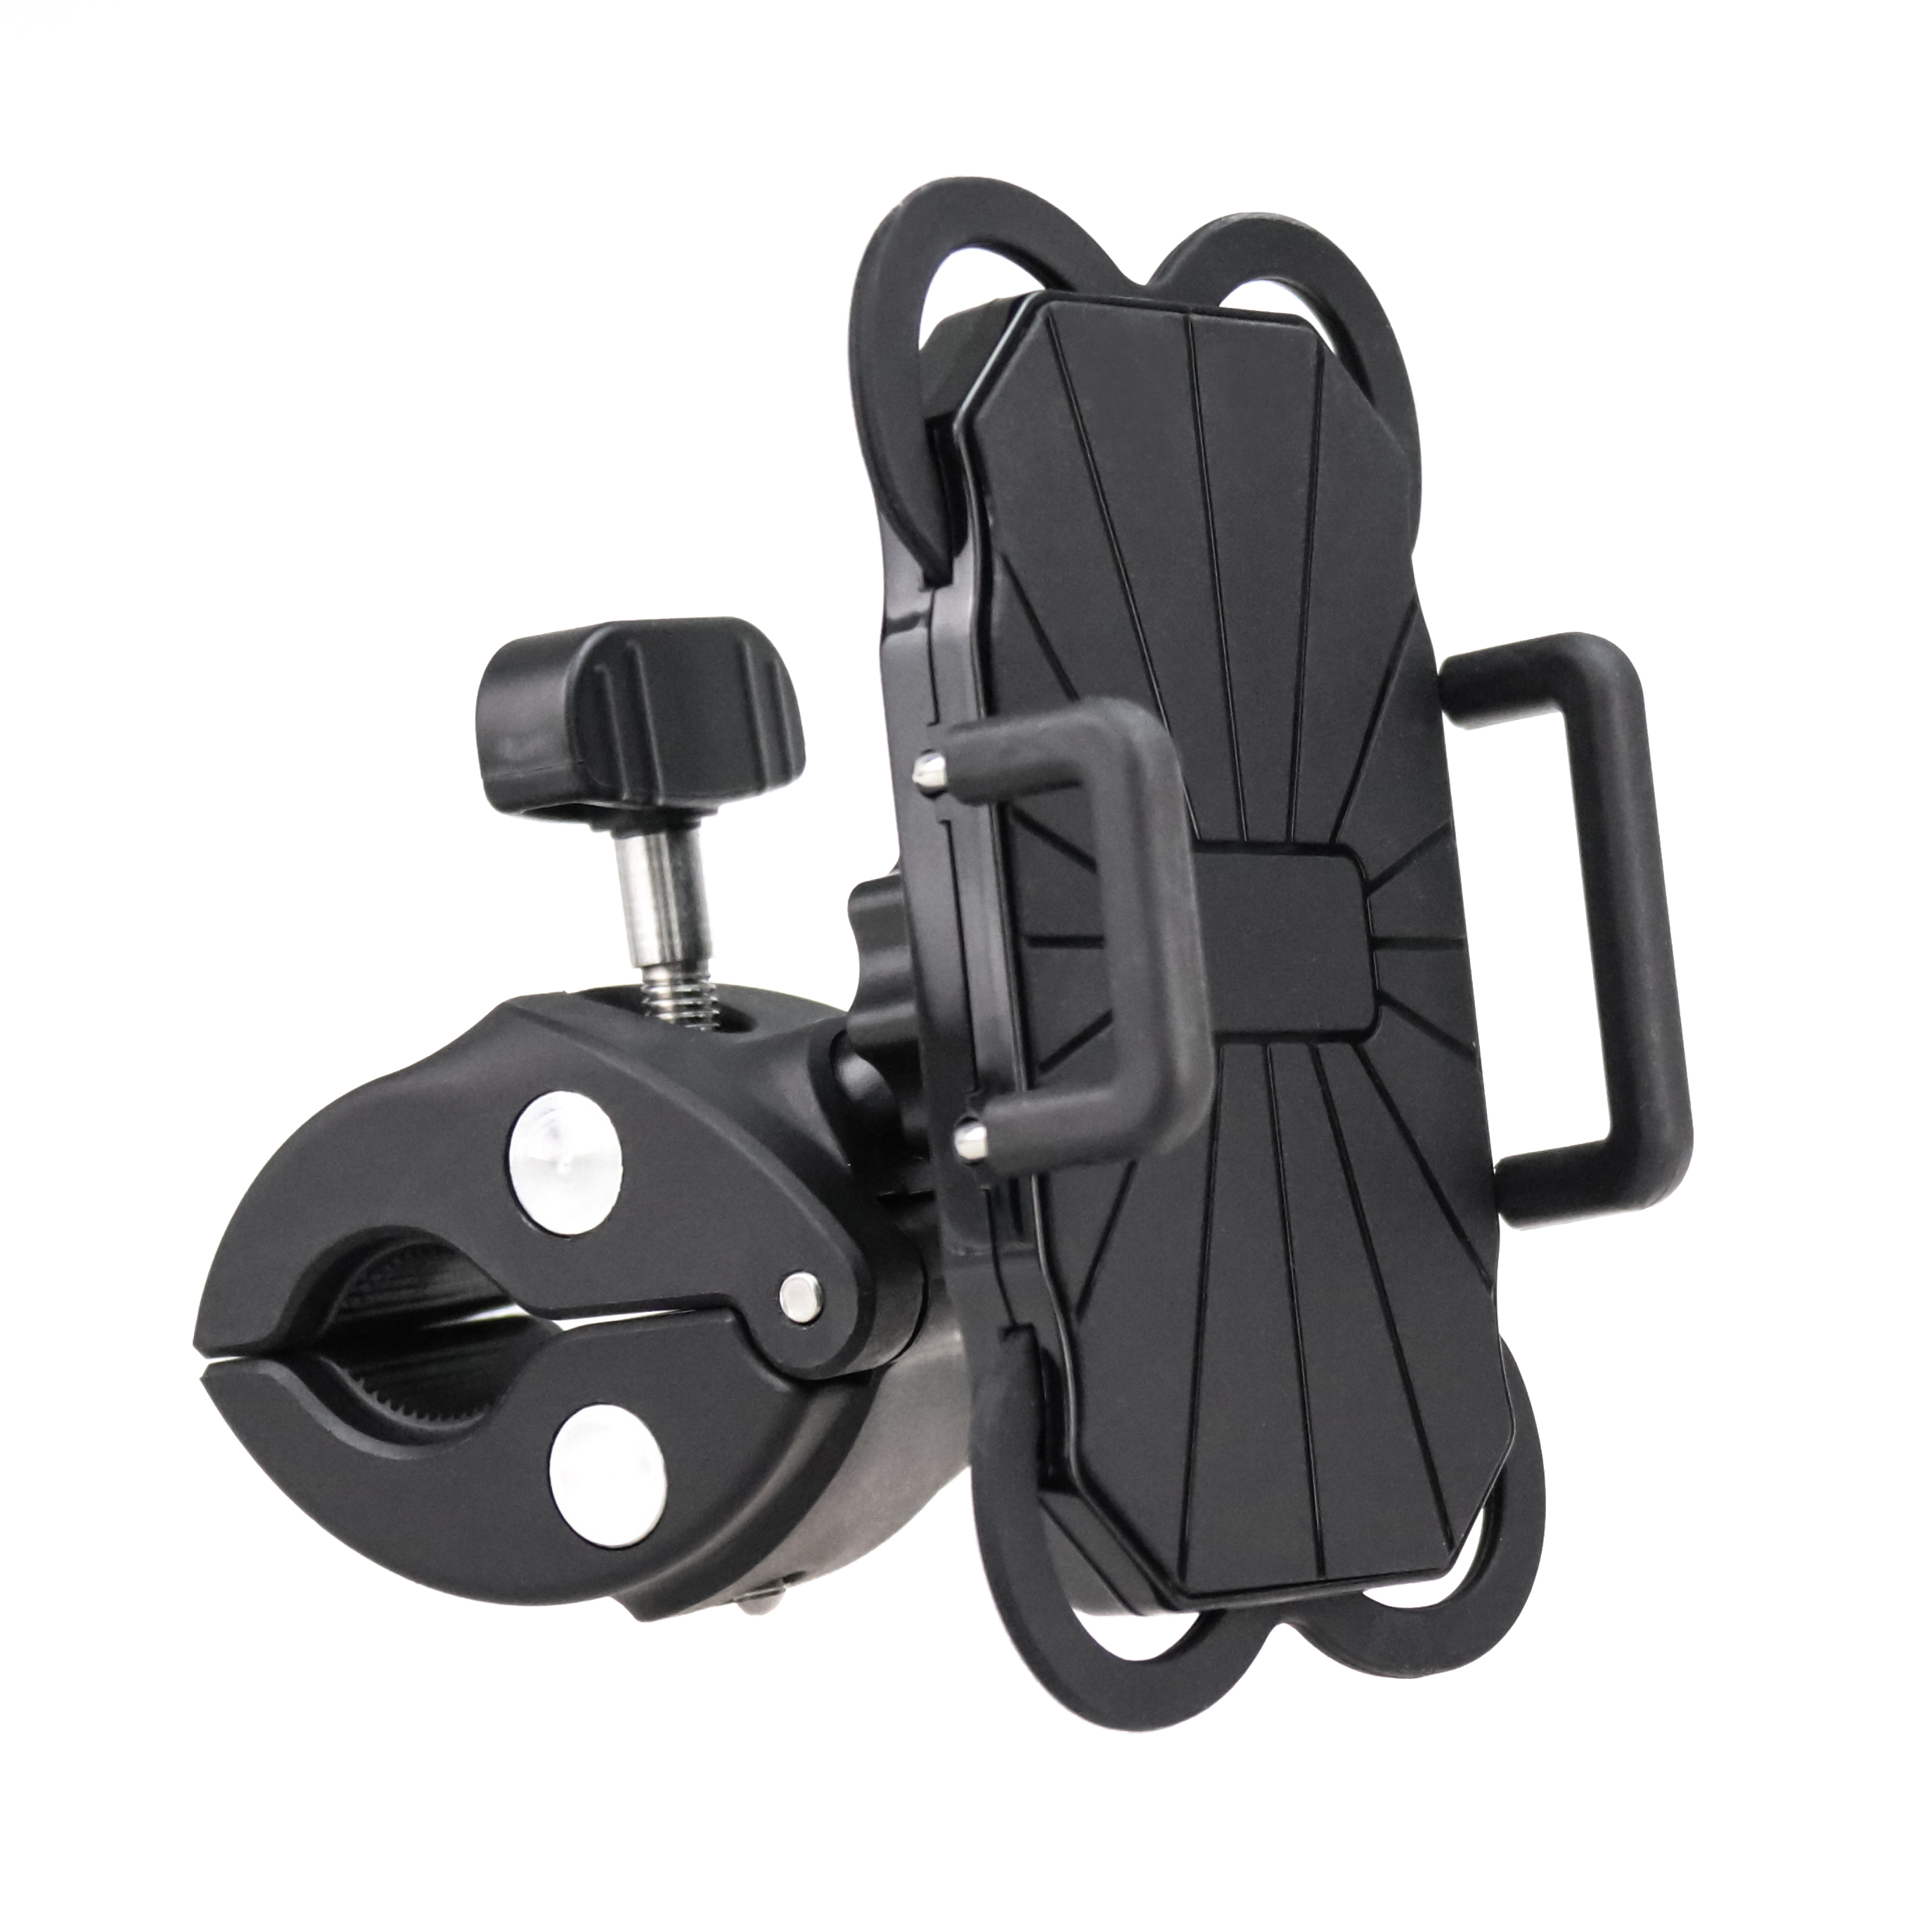 Universal Bike Handlebar <strong>Phone</strong> Mount 360 Rotation Stable <strong>Mobile</strong> Holders for Bicycle, Motorcycle, Baby Stroller